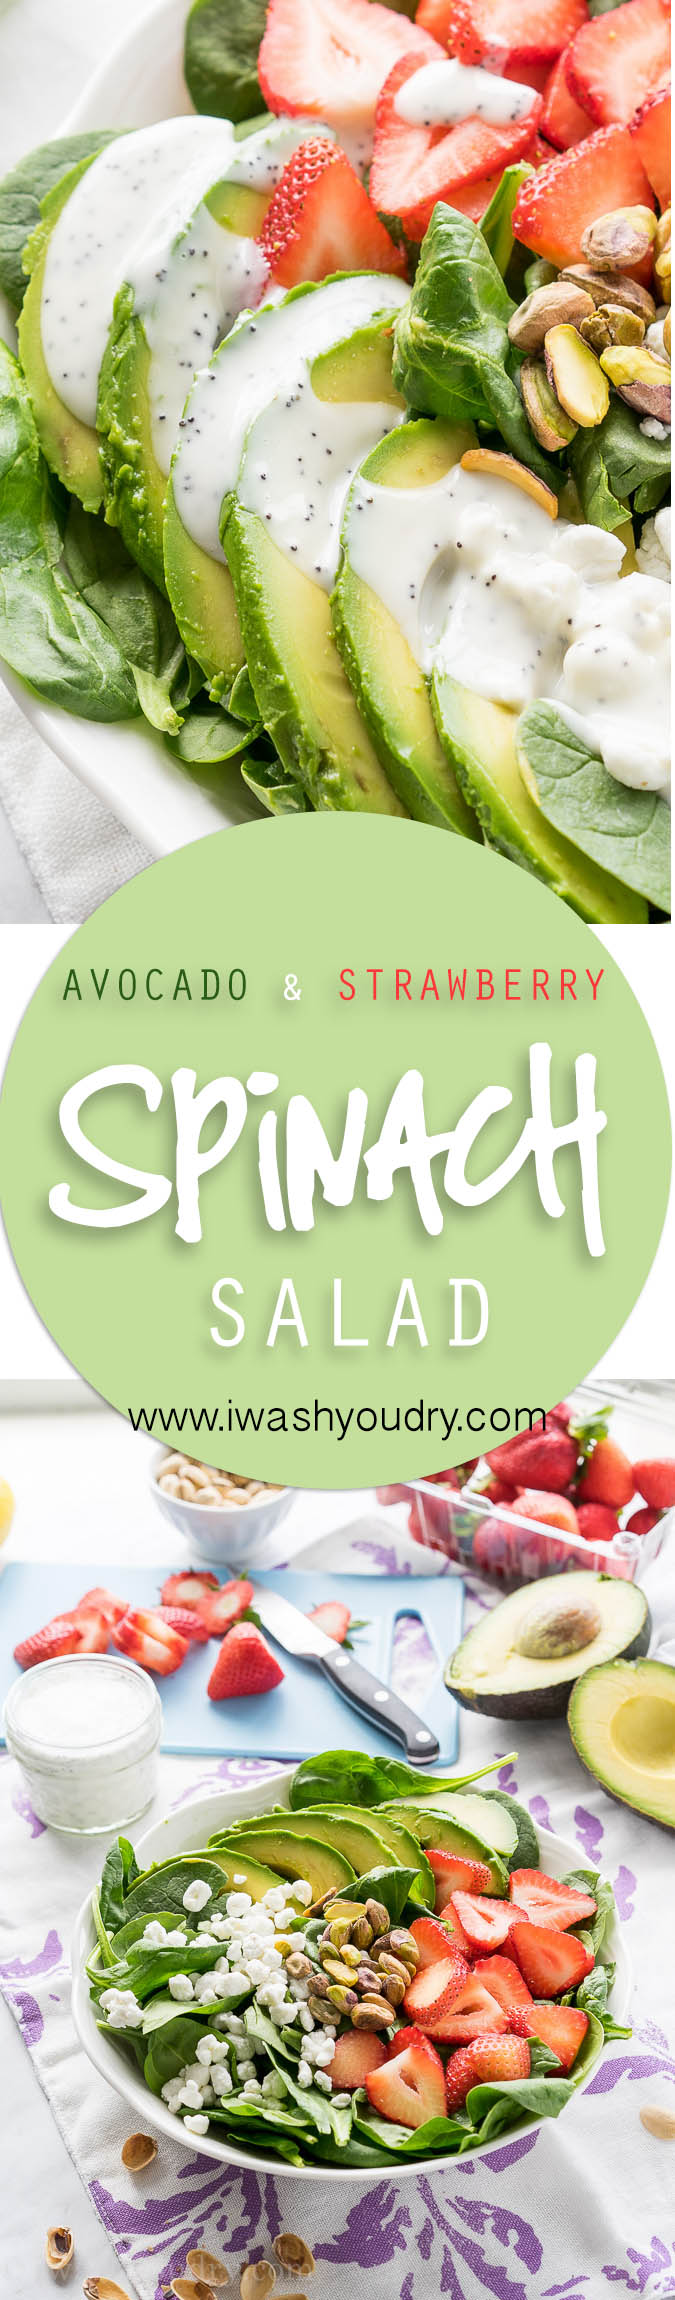 This Avocado Strawberry Spinach Salad is a quick and easy lunch recipe that's perfect for hot summer days!